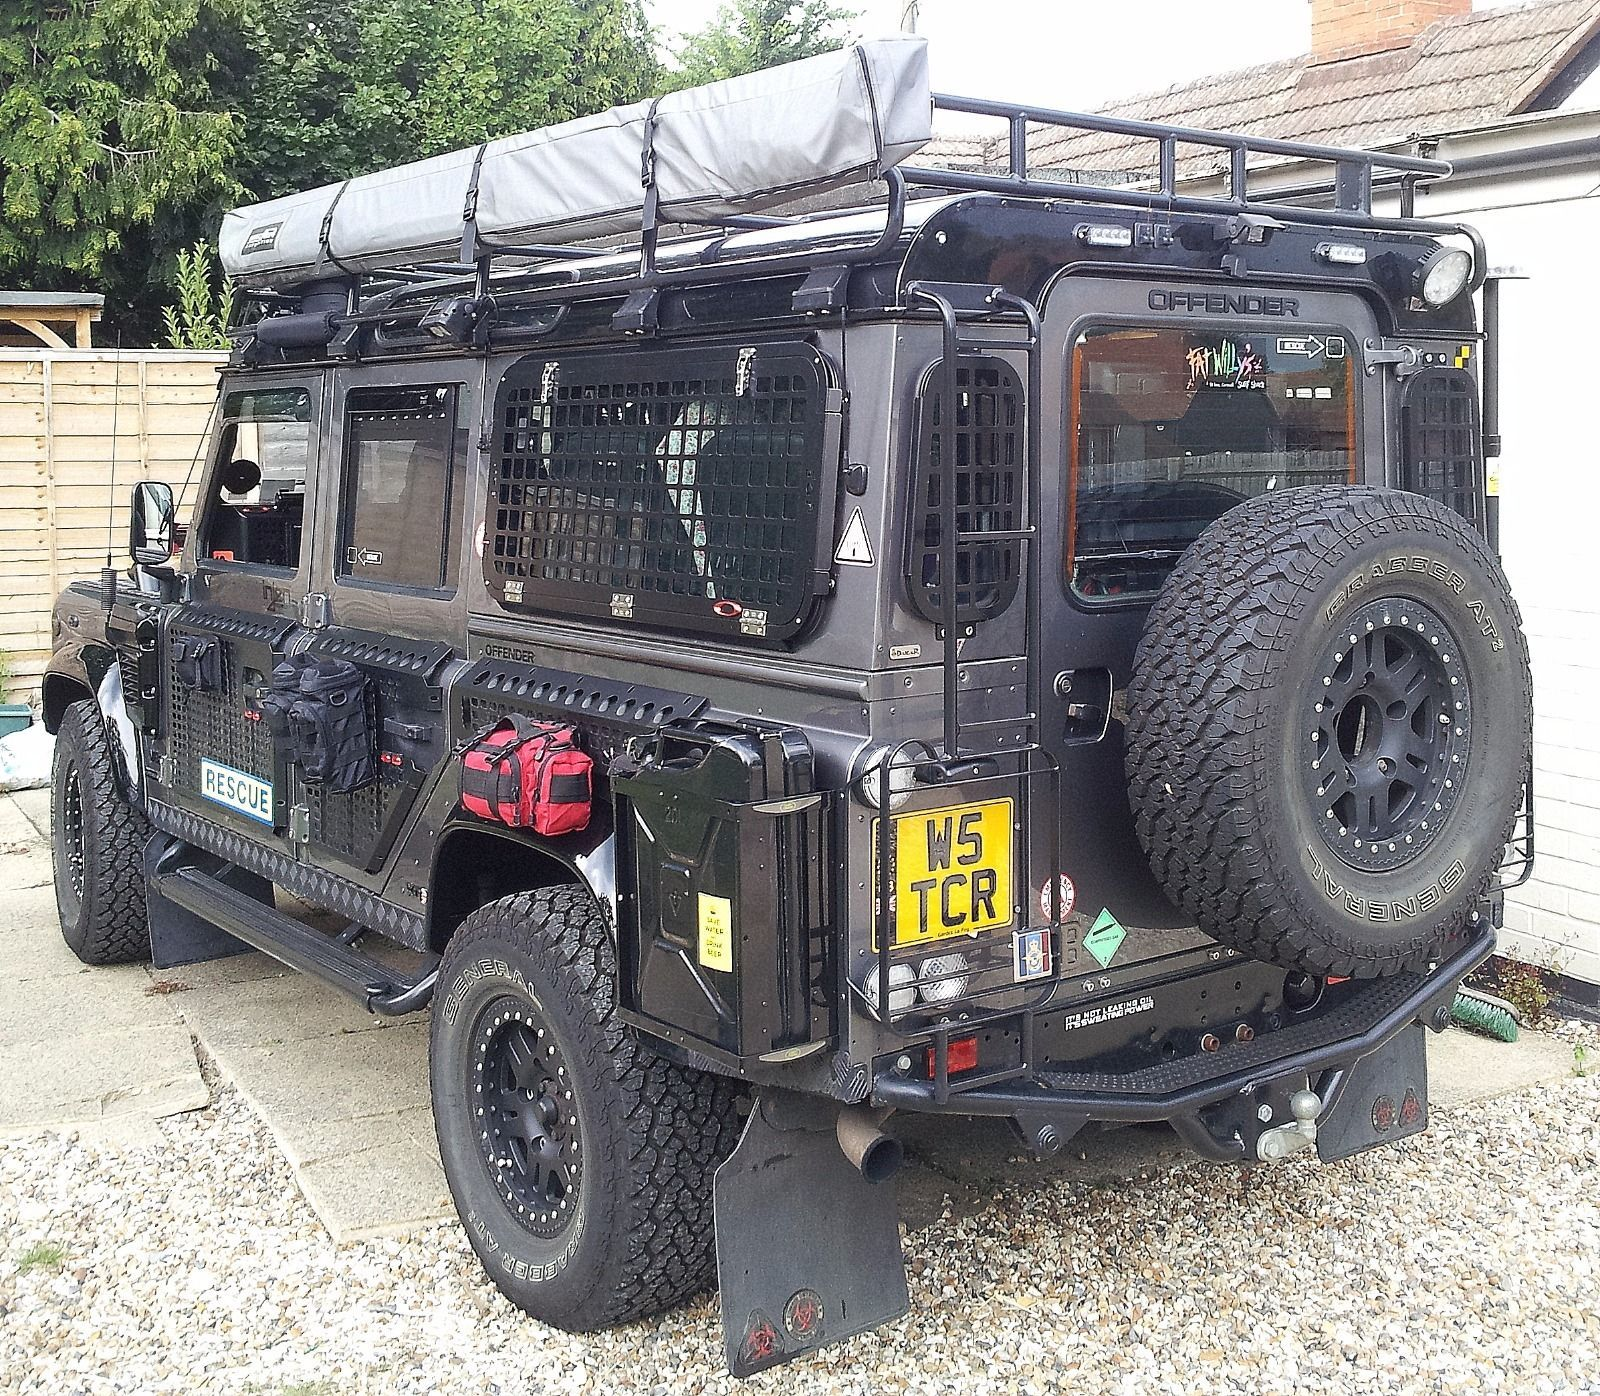 Details About Land Rover Defender 110 TD5